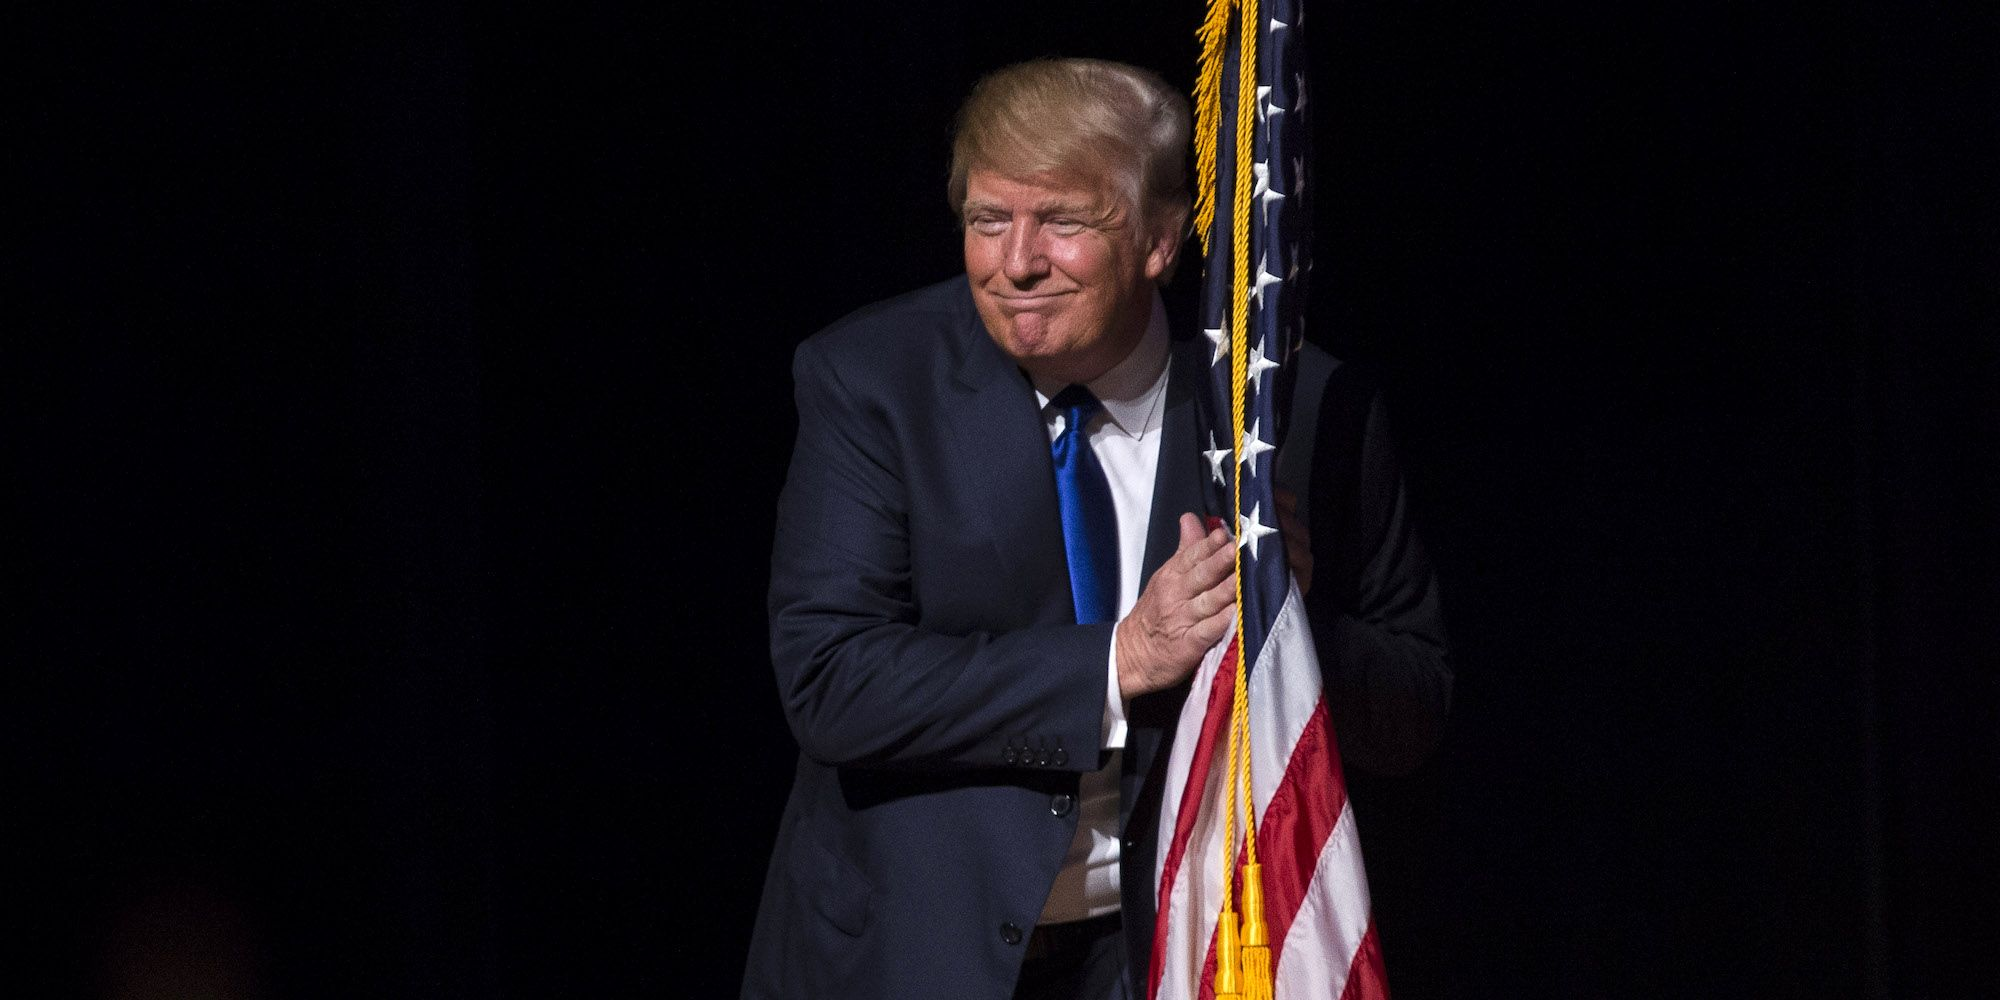 Donald Trump Town Hall Meeting In Derry, NH